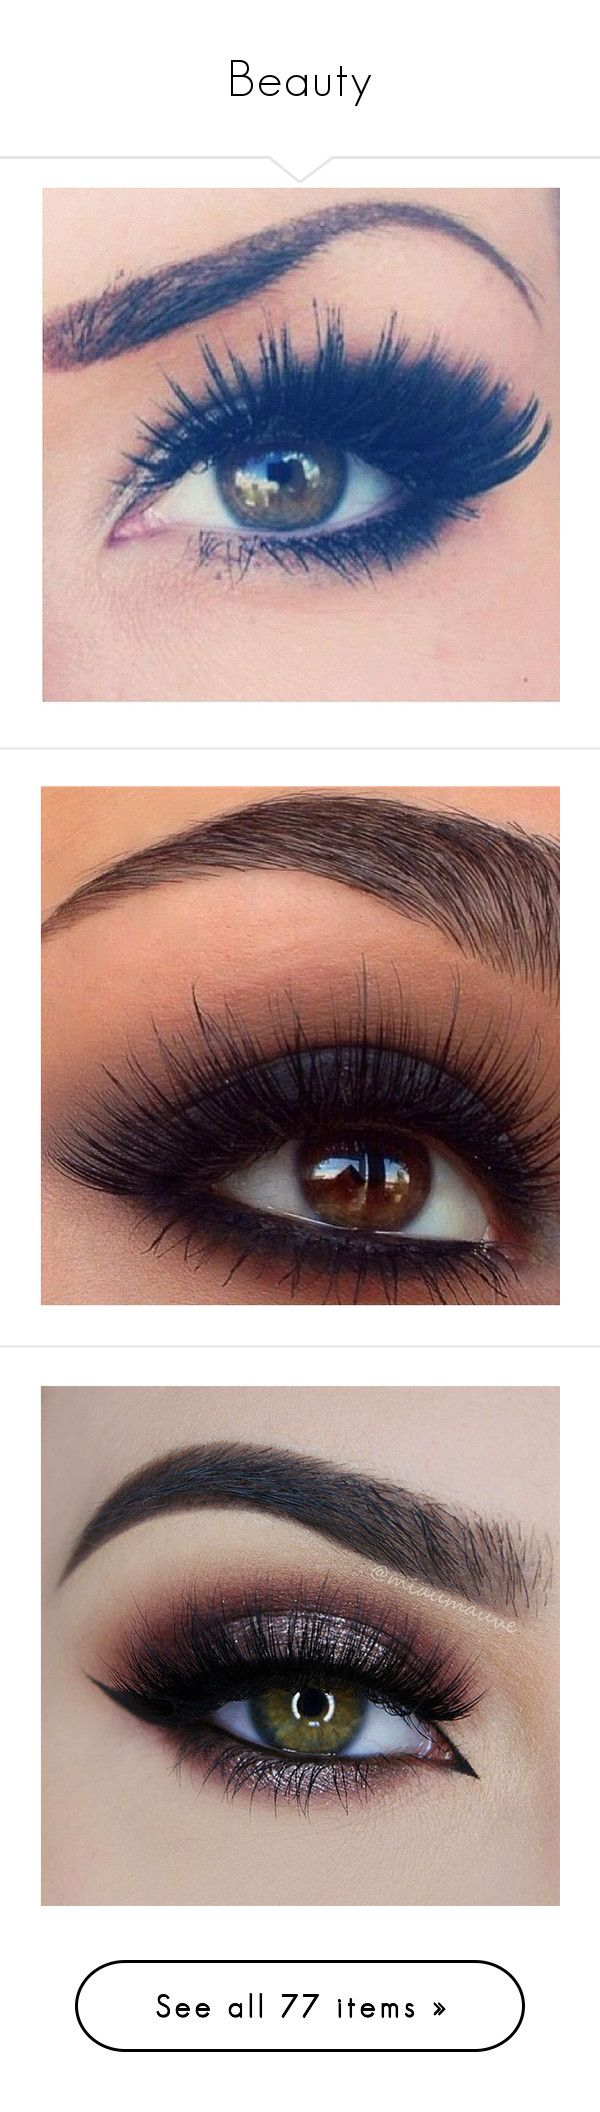 """""""Beauty"""" by nicole-briffa ❤ liked on Polyvore featuring beauty products, makeup, eye makeup, eyes, beauty, eye make up, eyeshadow, maquiagem, lip and eyeliner"""